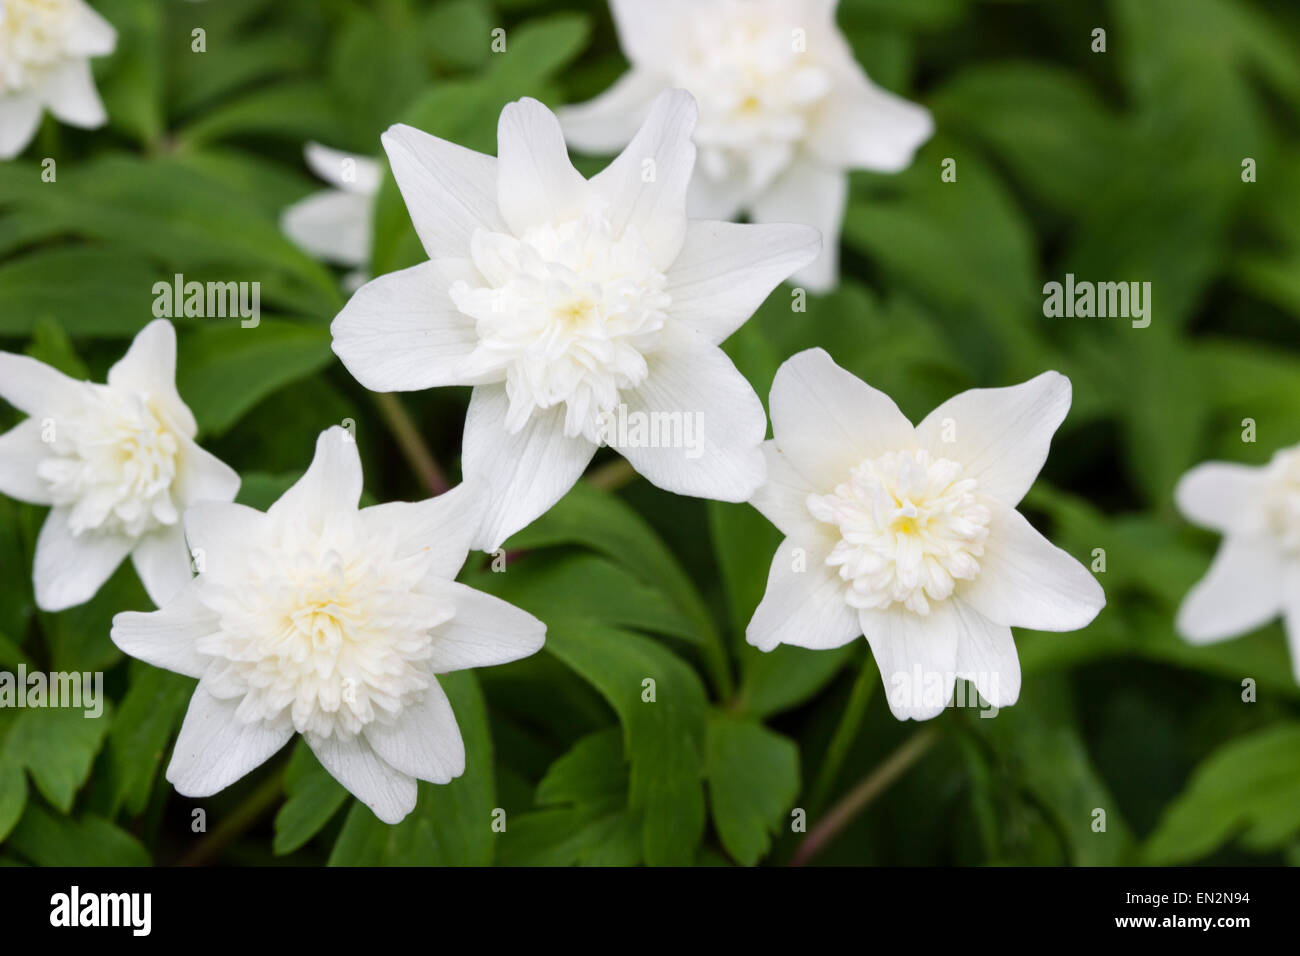 Flowers of the doubled form of the wood anemone, Anemone nemorosa 'Vestal' - Stock Image